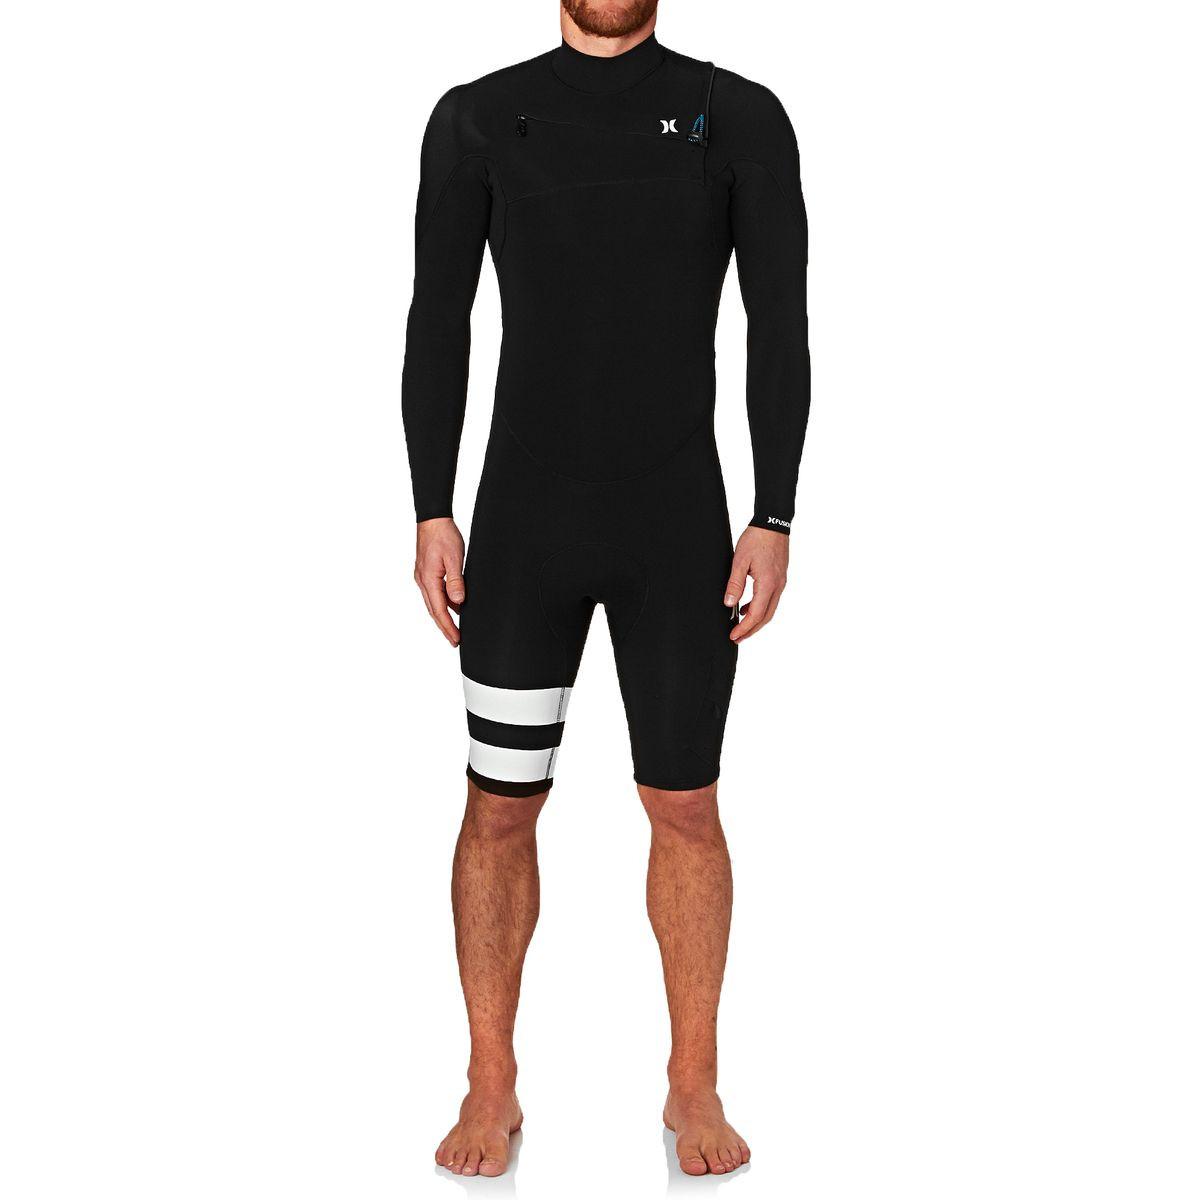 Hurley Fusion 2mm 2017 Chest Zip Long Sleeve Shorty Wetsuit - Black